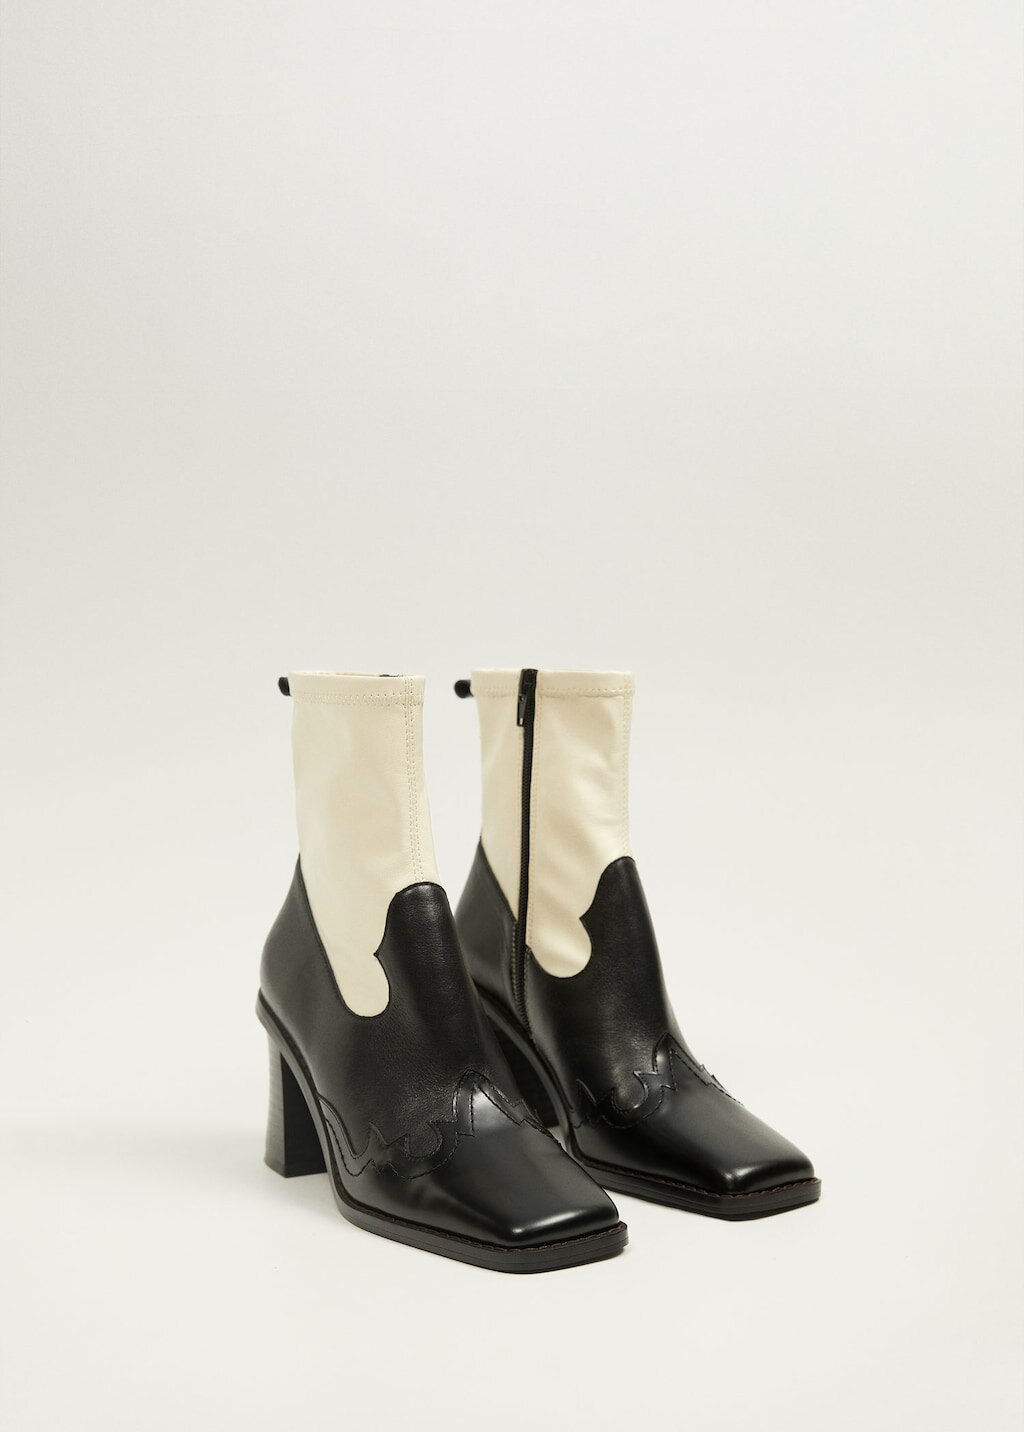 Mango Leather Cowboy Ankle Boots: $129